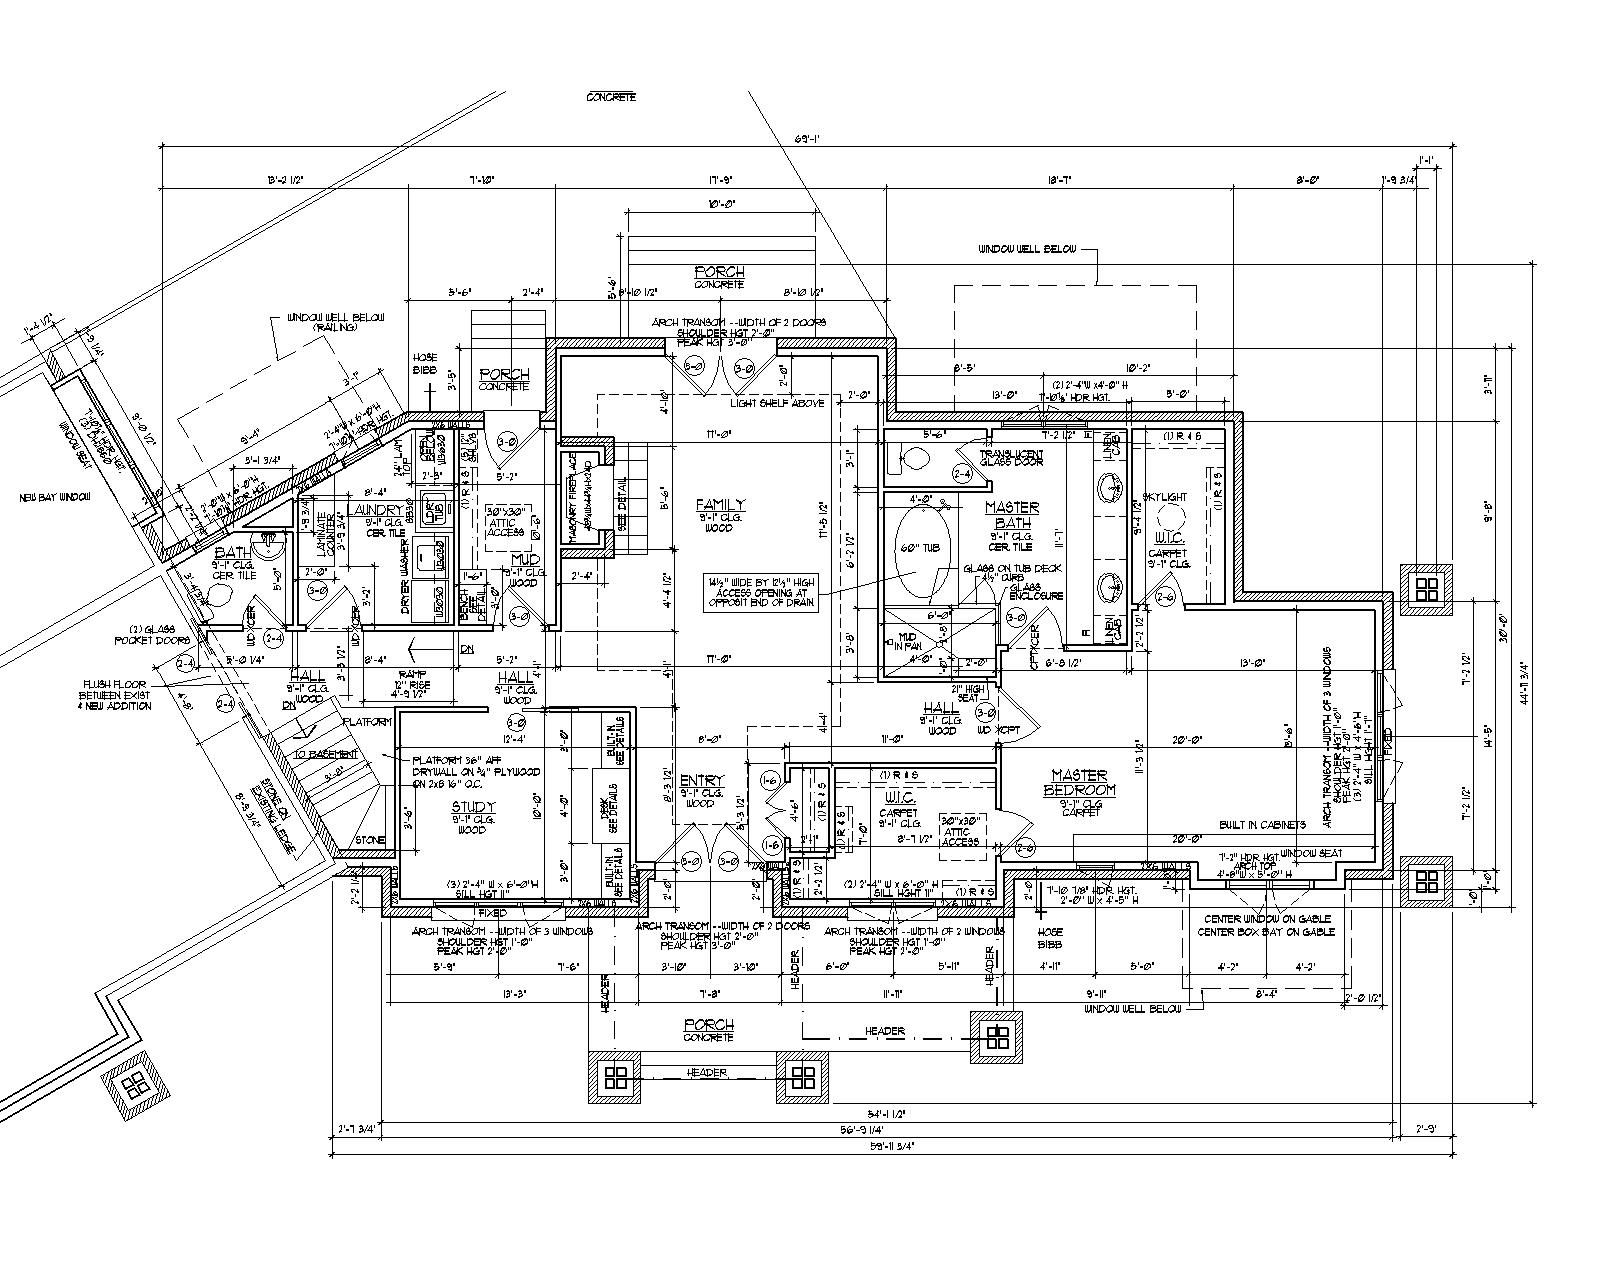 2d autocad house plans residential building drawings cad for Autocad house drawings